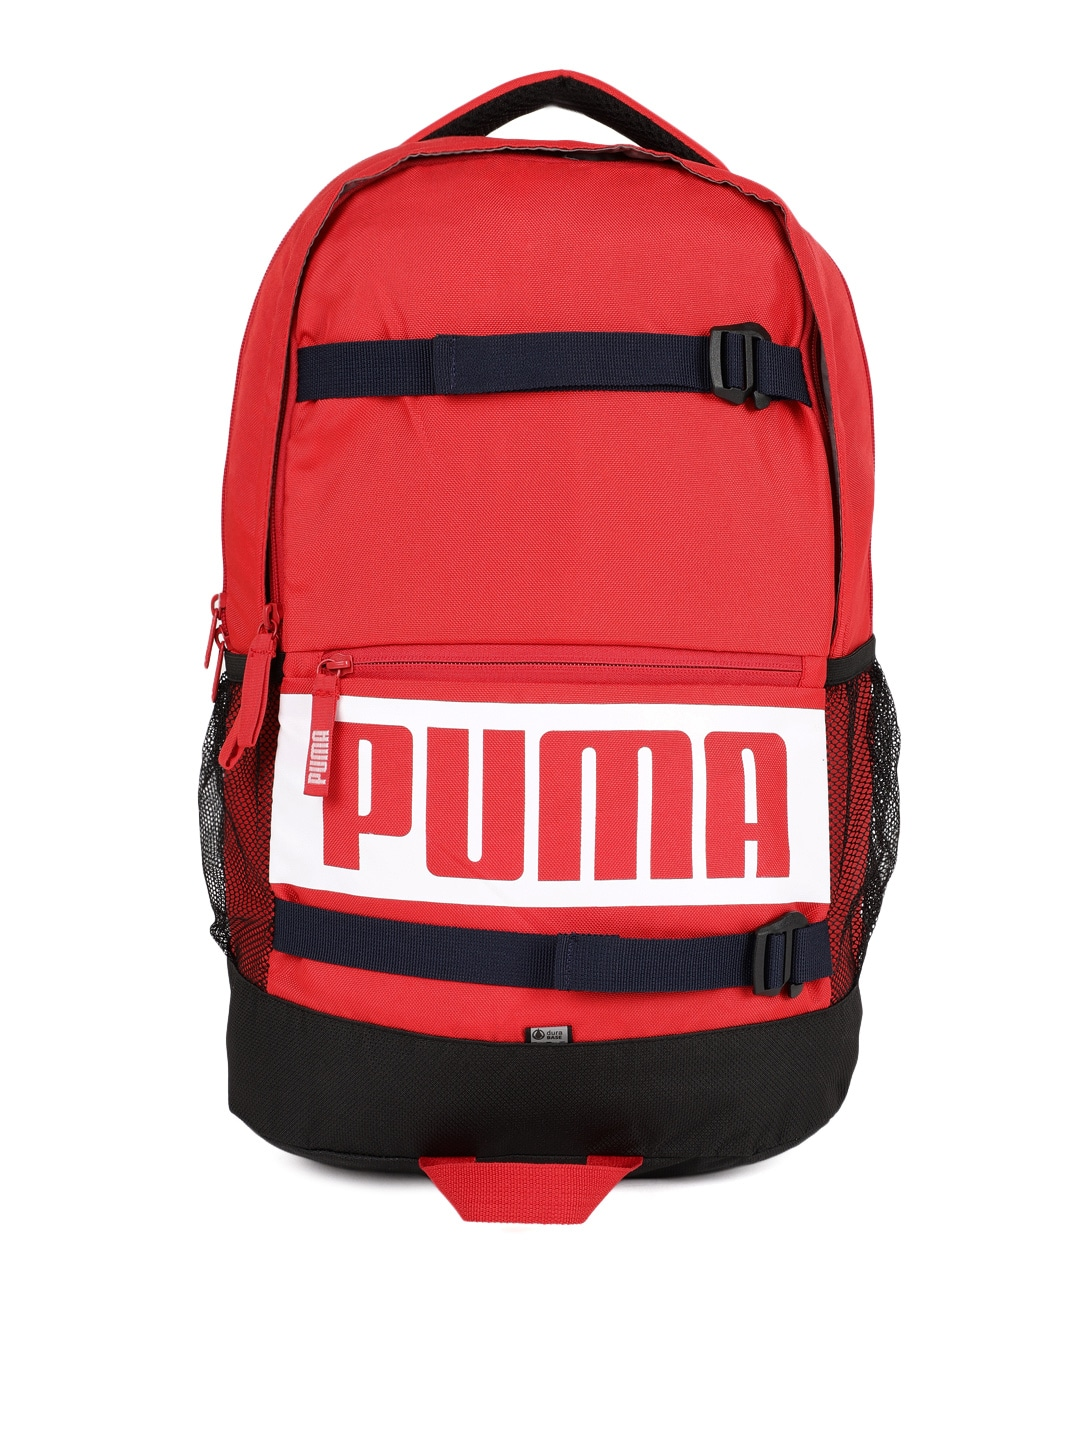 Puma Bmw F 1 Backpacks Laptop Bags - Buy Puma Bmw F 1 Backpacks Laptop Bags  online in India 73016fa02e378